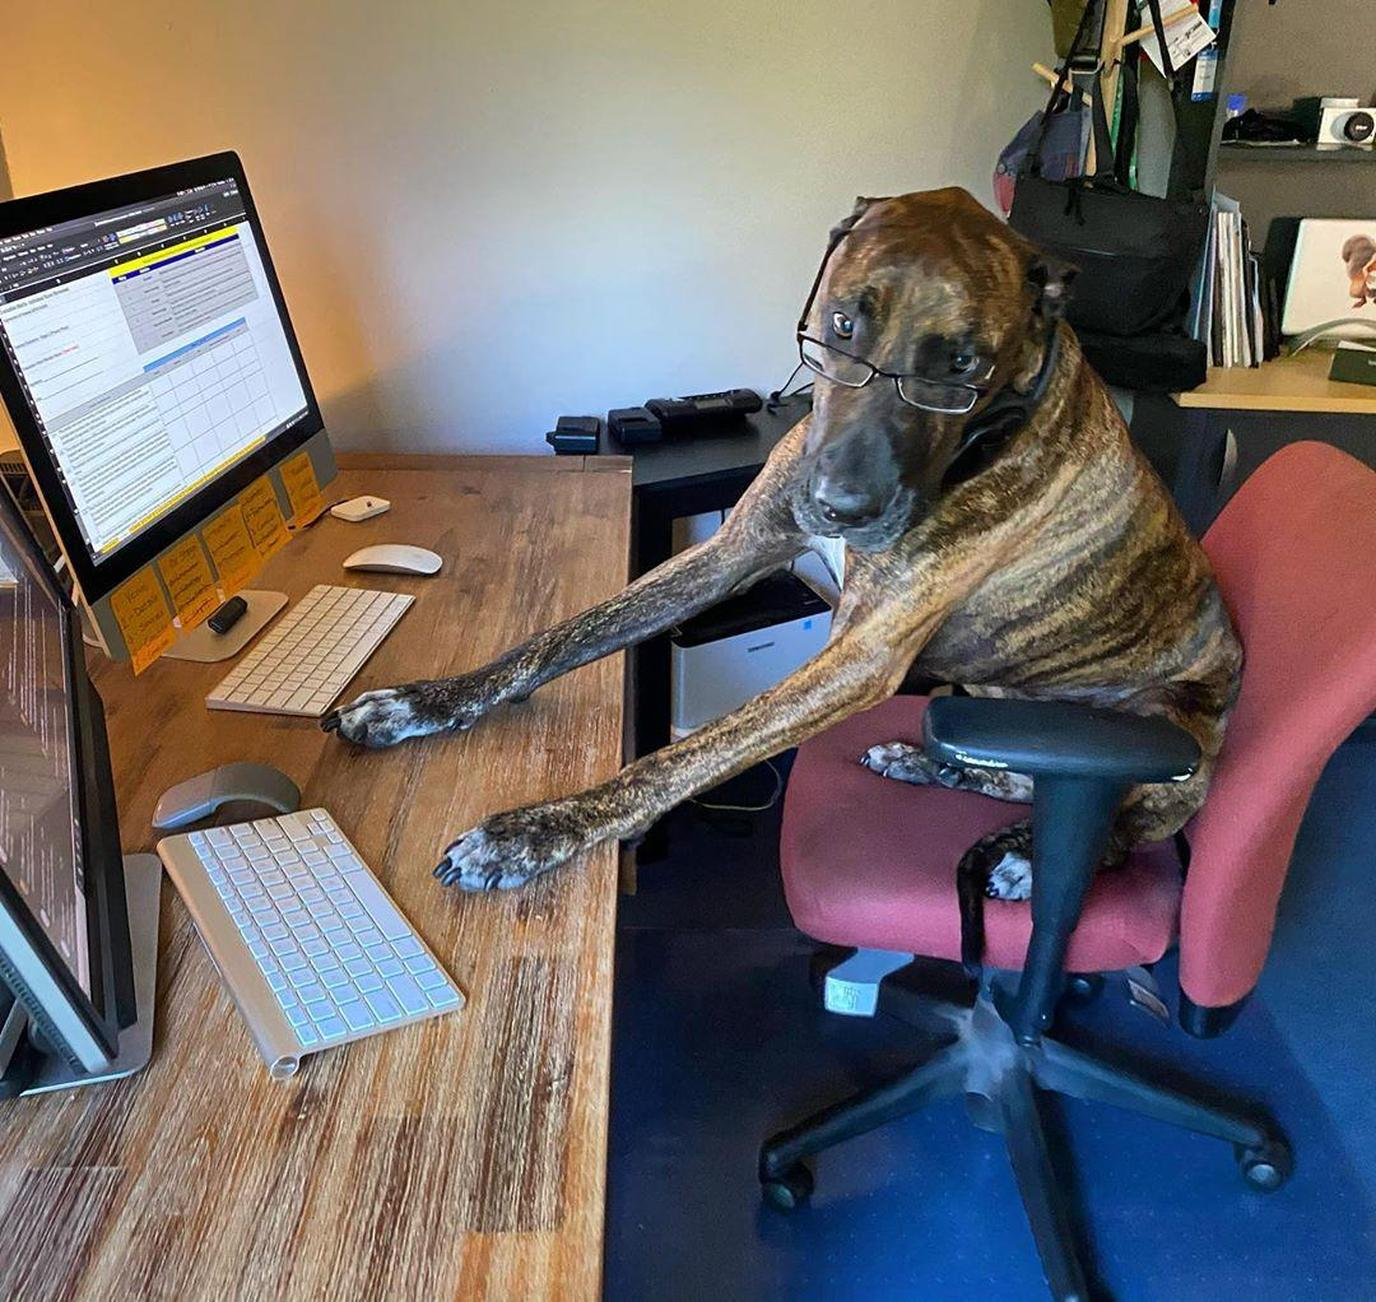 A Brindle-Colored Dog Works From Home at a Desk.